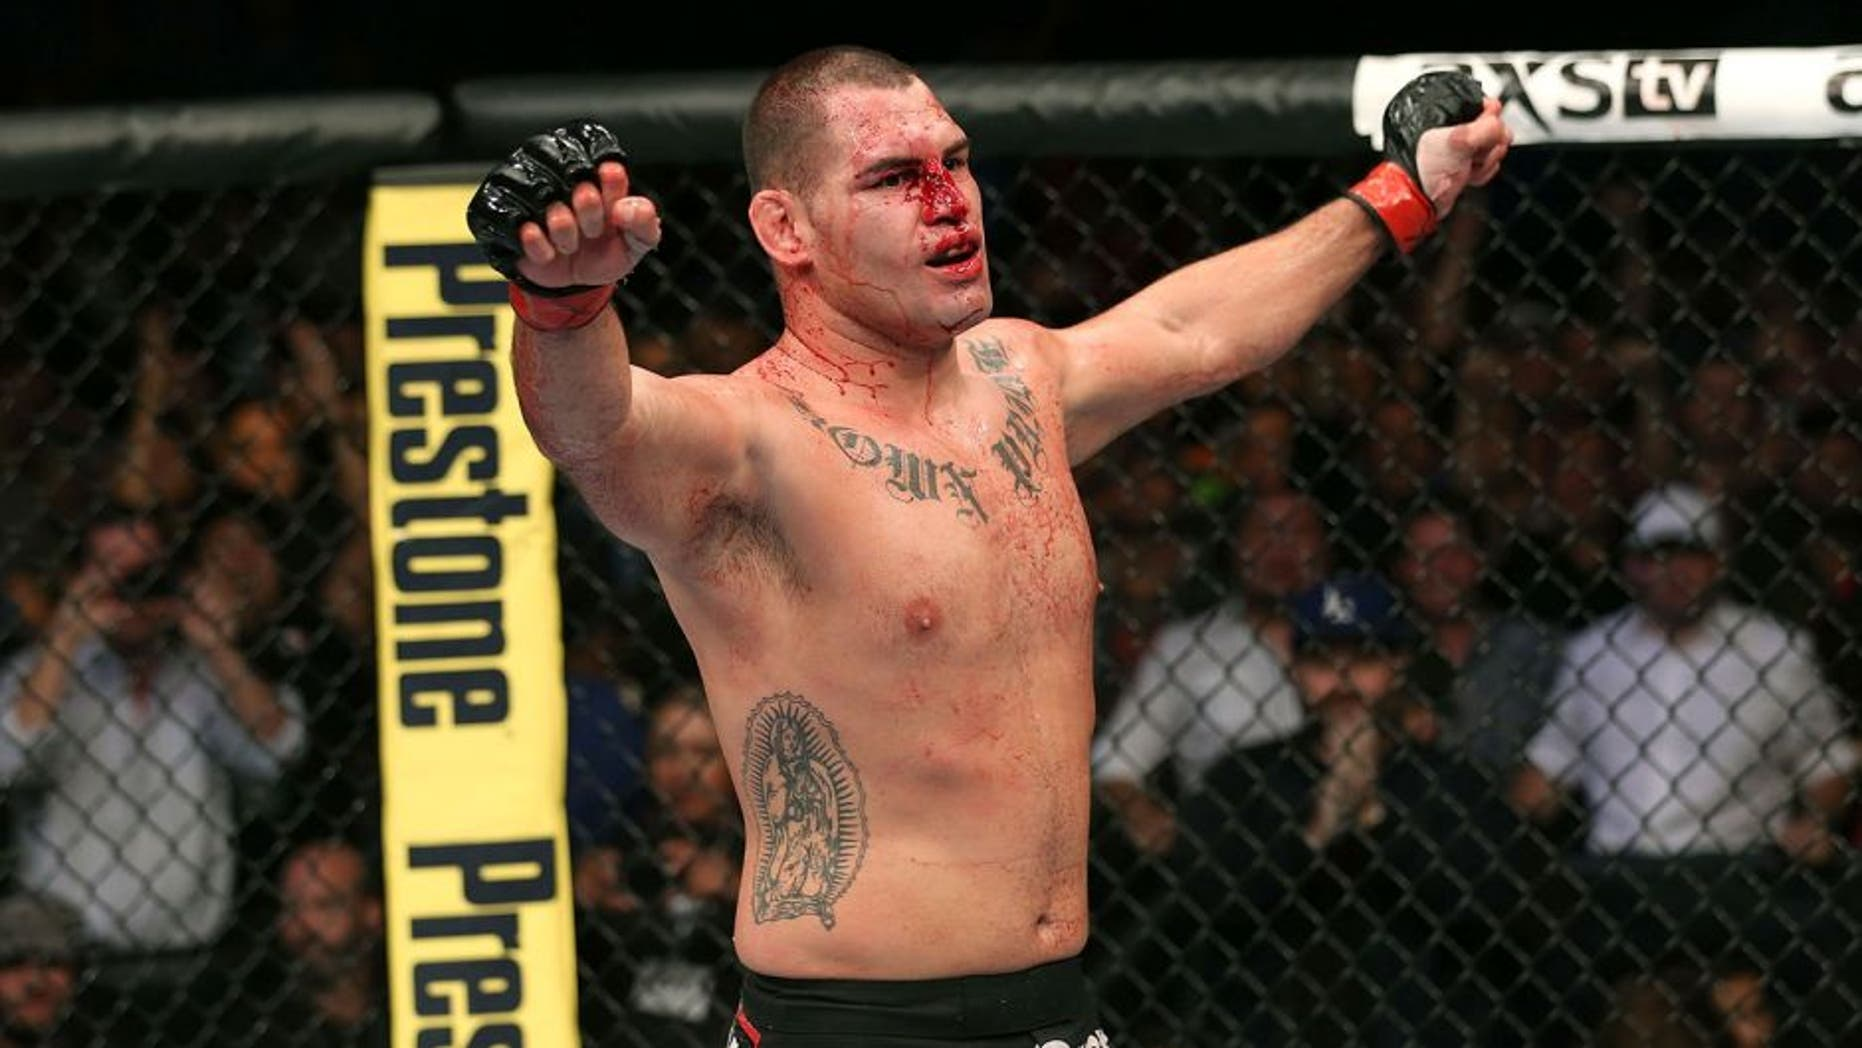 HOUSTON, TEXAS - OCTOBER 19: Cain Velasquez celebrates after defeating Junior Dos Santos (not pictured) by TKO in their UFC heavyweight championship bout at the Toyota Center on October 19, 2013 in Houston, Texas. (Photo by Nick Laham/Zuffa LLC/Zuffa LLC via Getty Images)